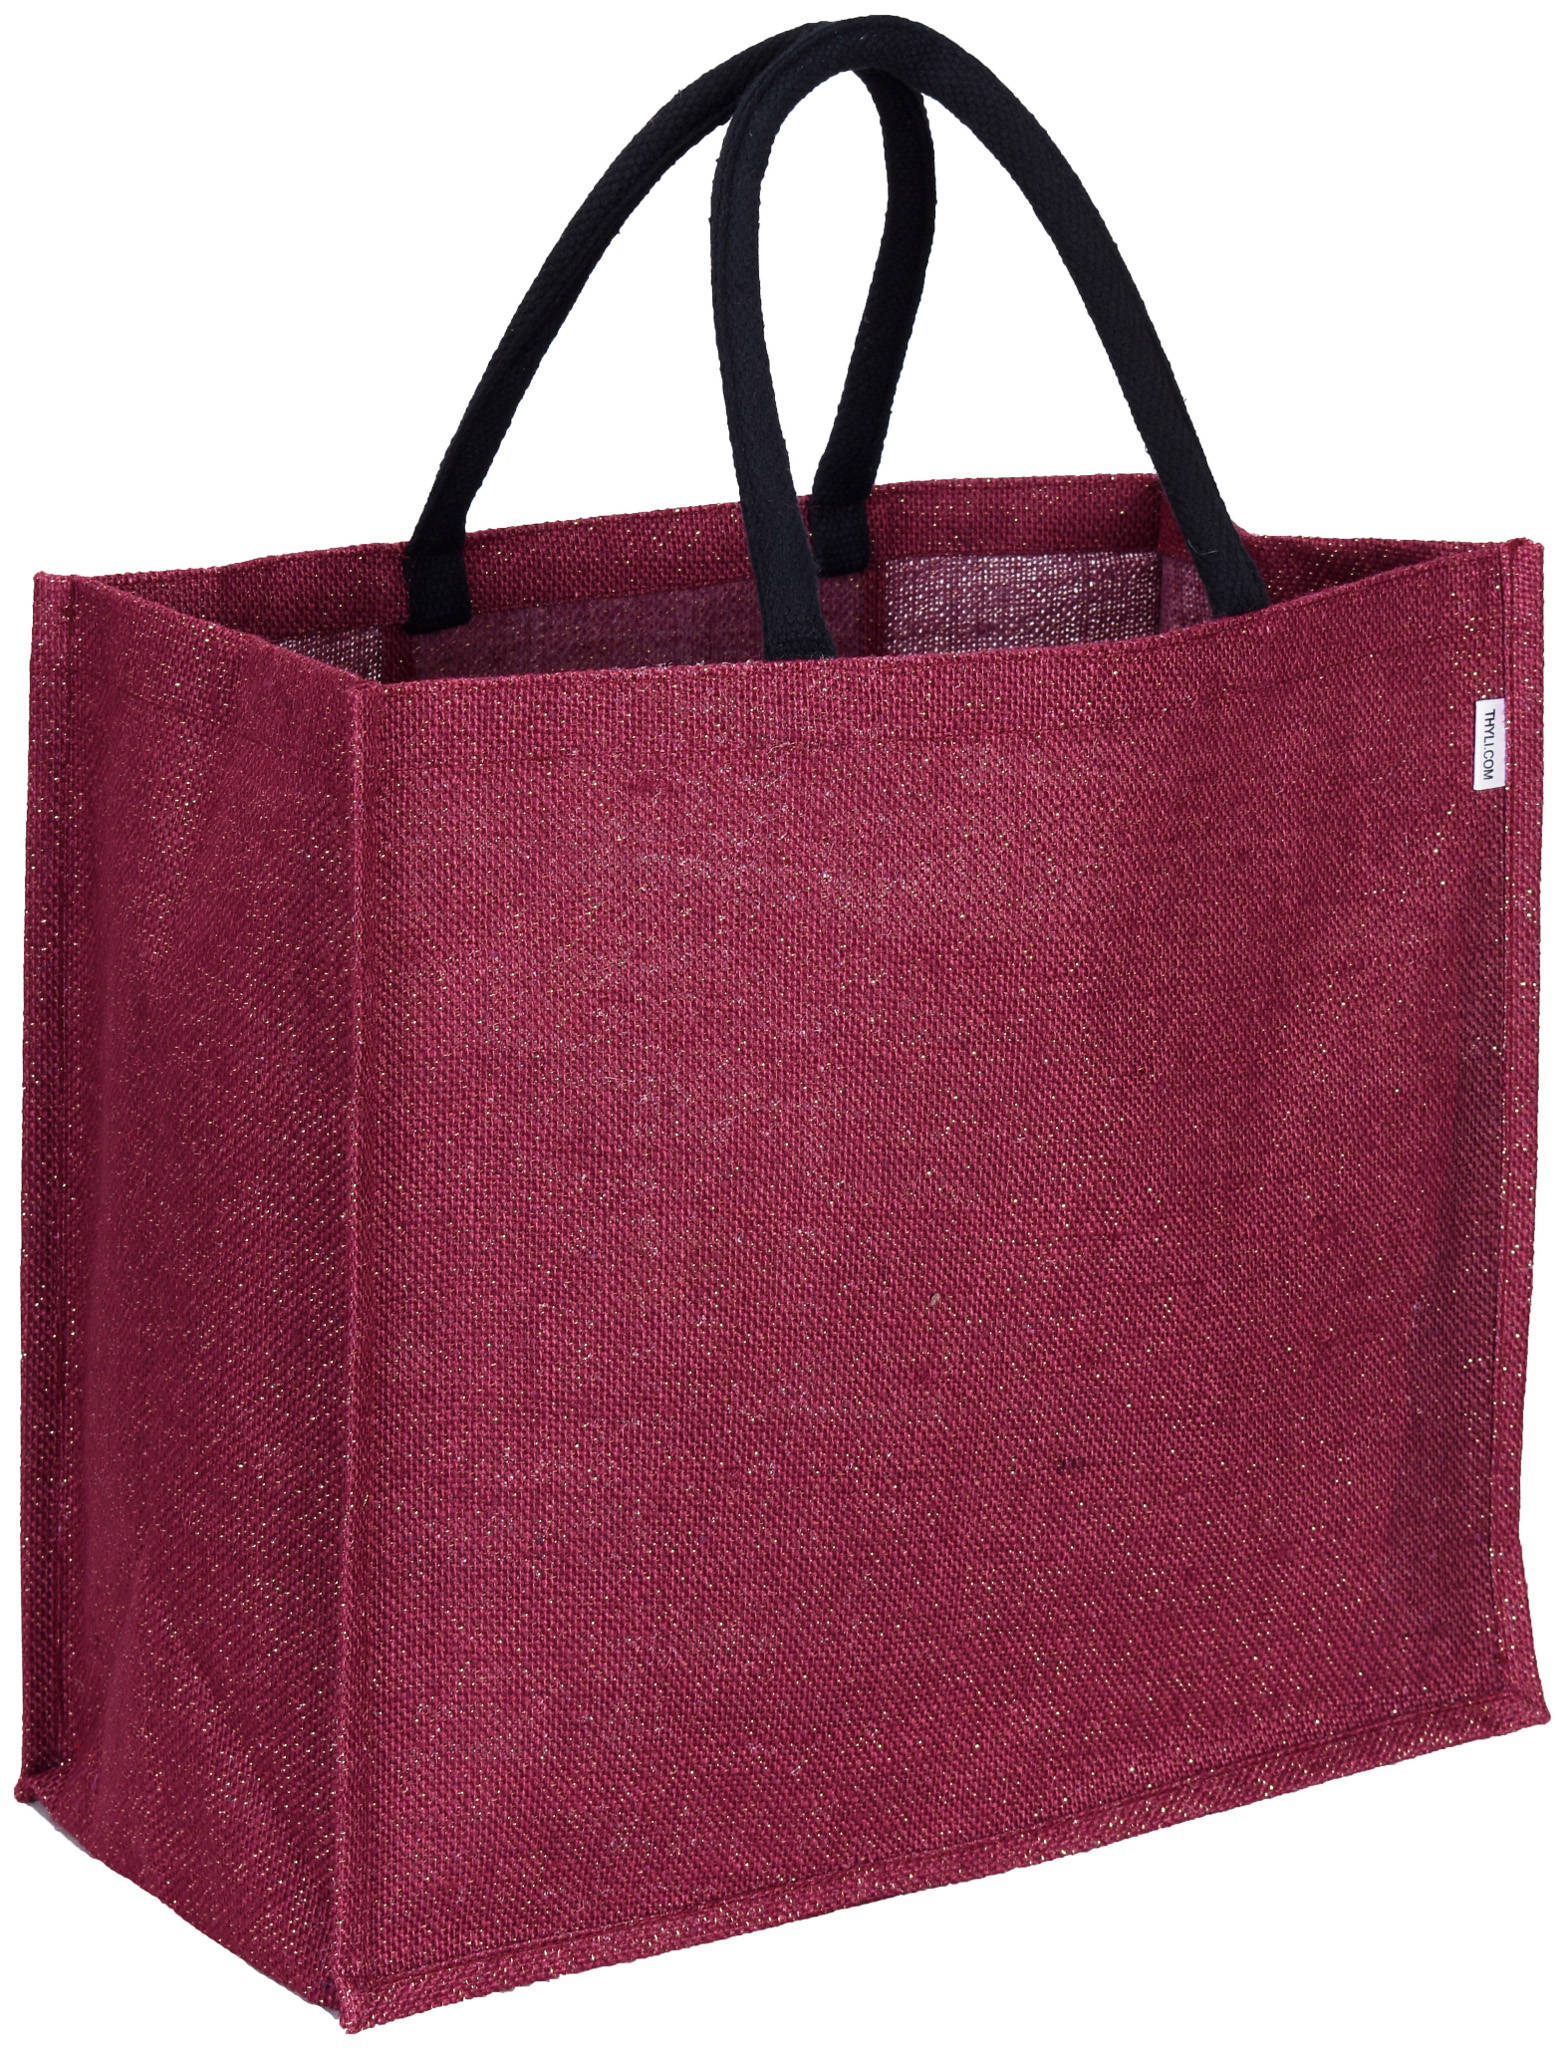 Reusable eco shopping grocery jute tote bag